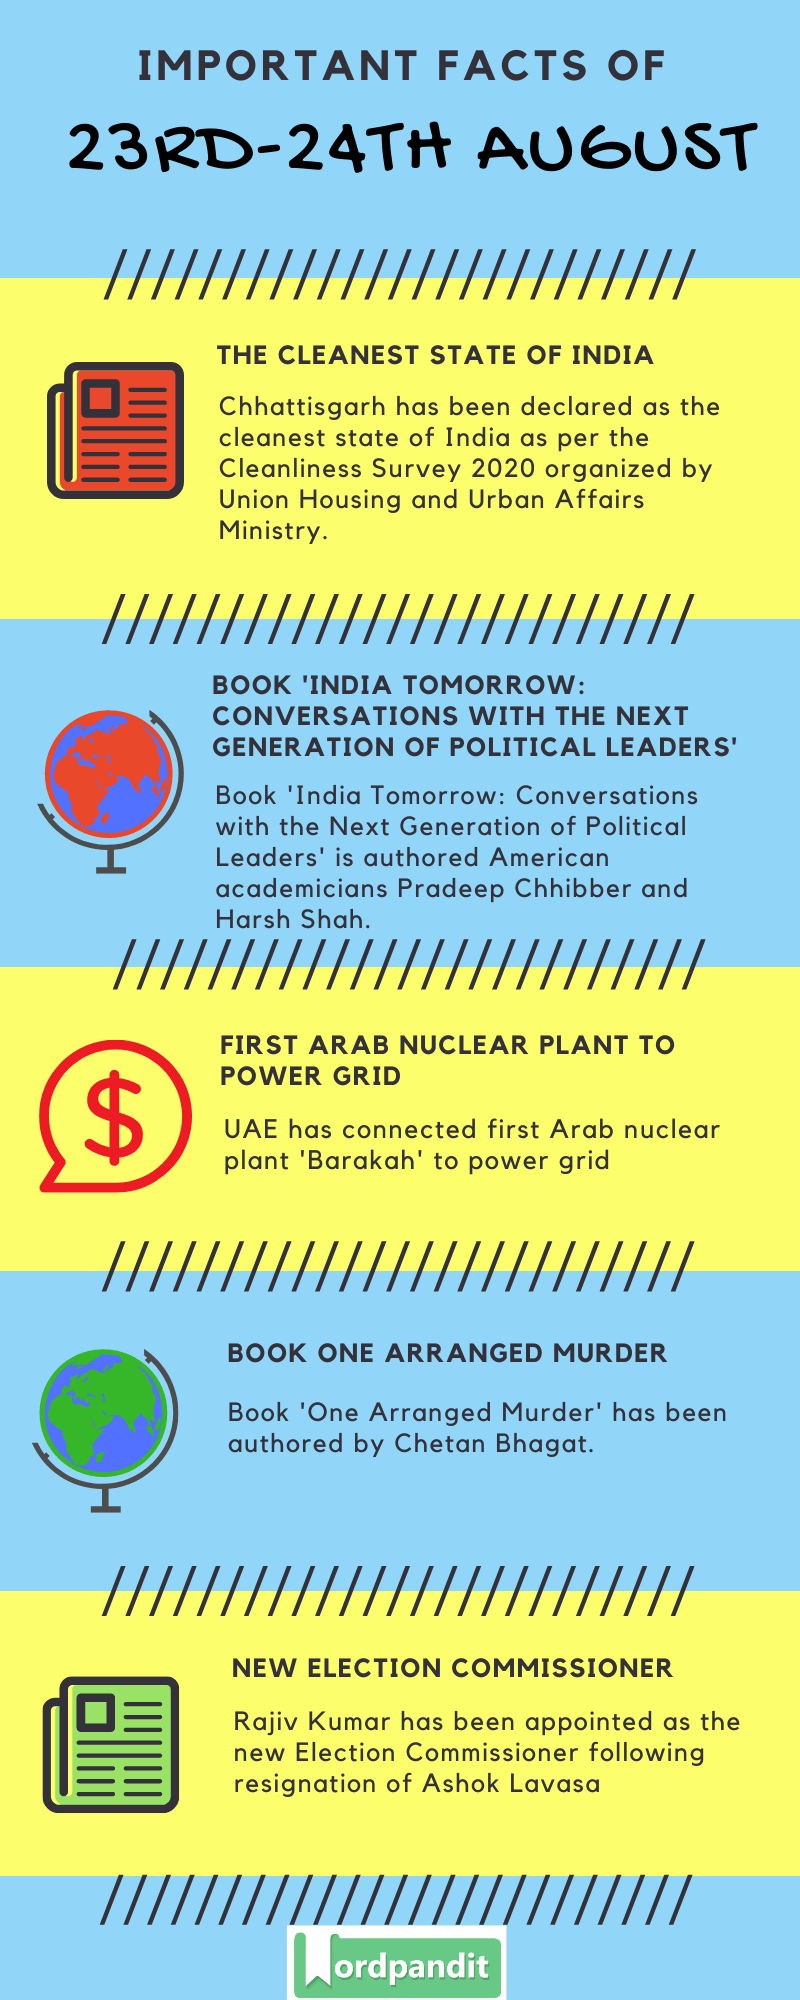 Daily Current Affairs 23rd-24th August 2020 Current Affairs Quiz 23rd-24th August 2020 Current Affairs Infographic